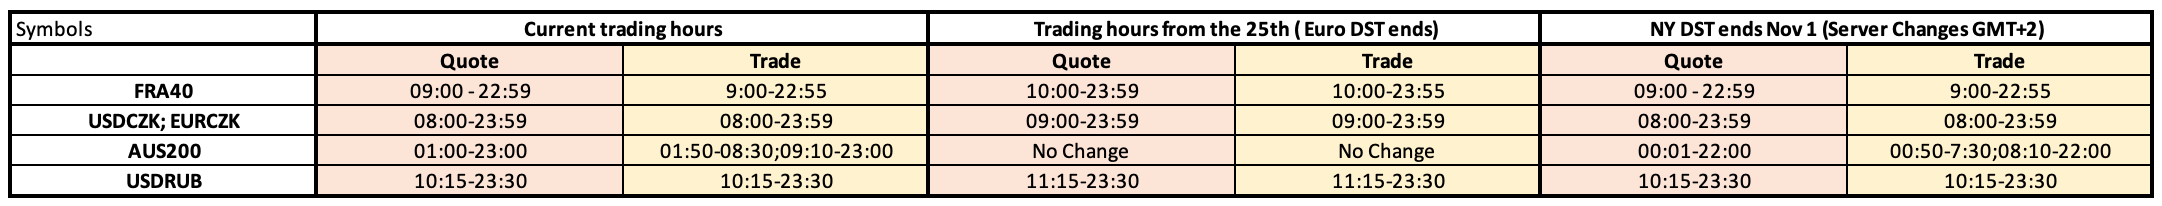 Daylight_savings_changes_10.20_.png